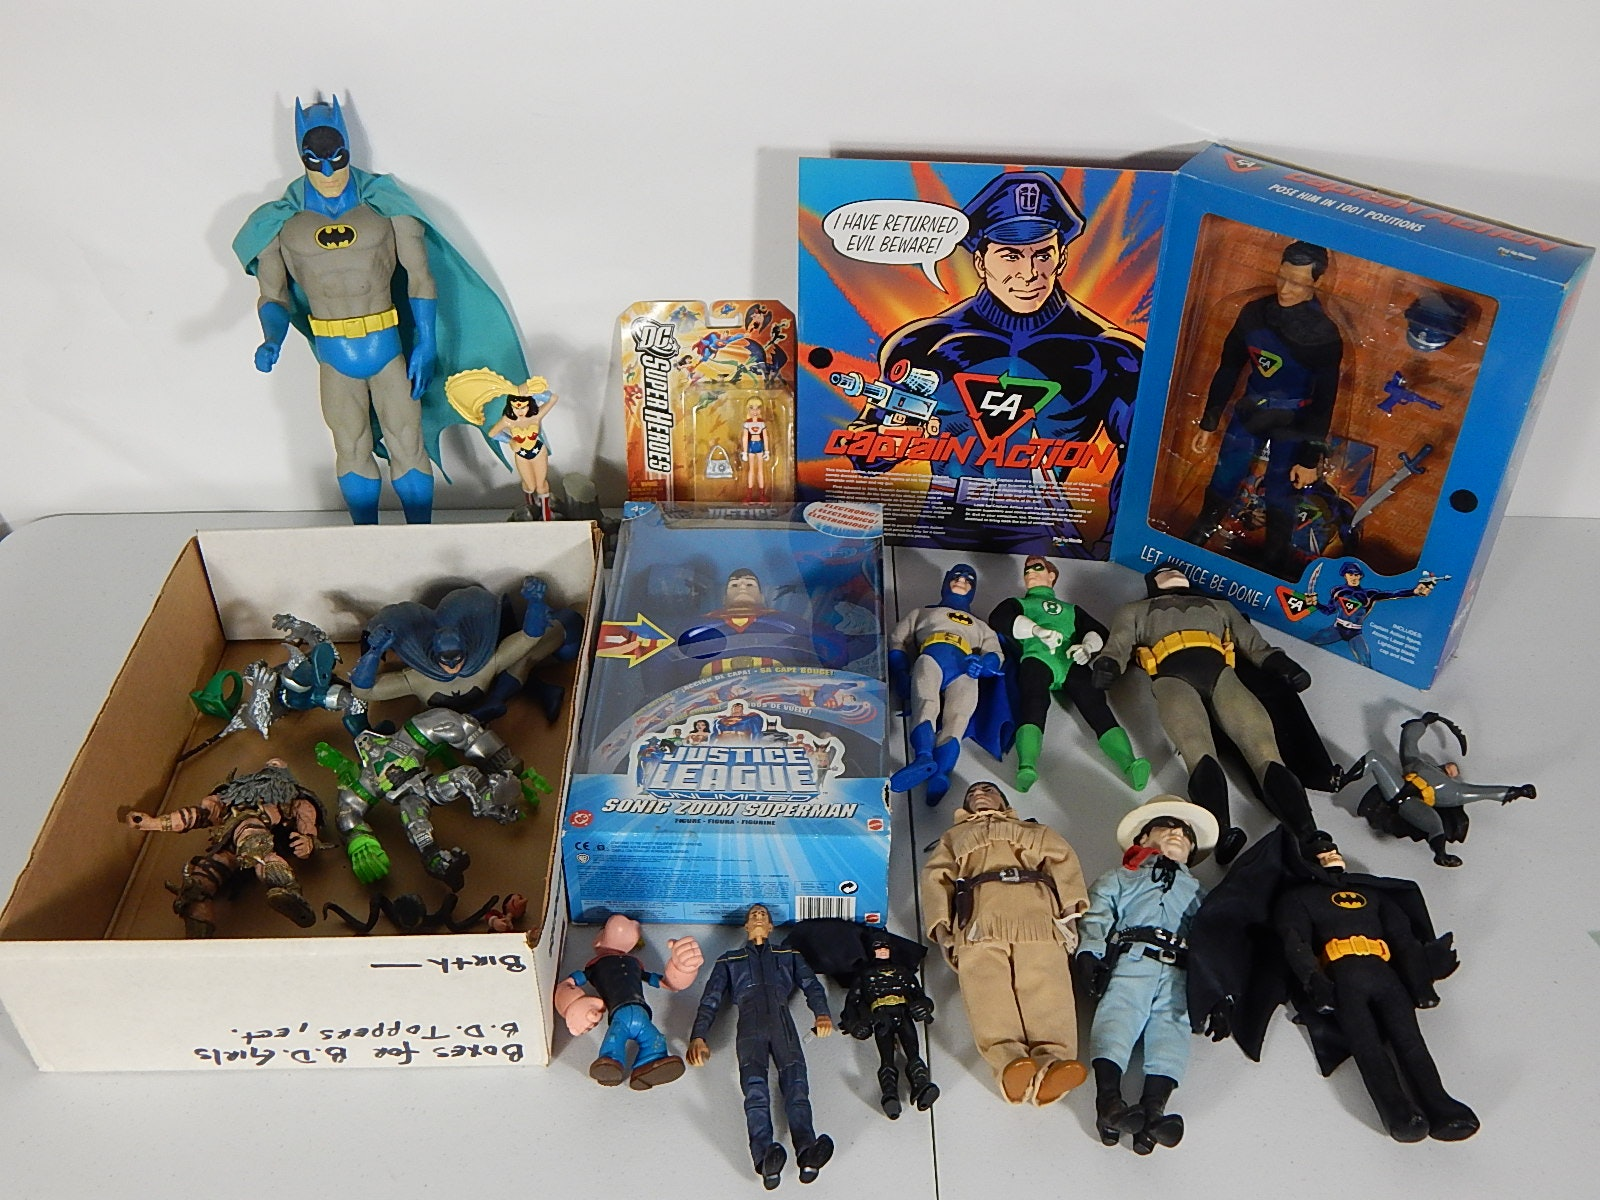 Toy Action Figure Lot with Batman, Superman, and More